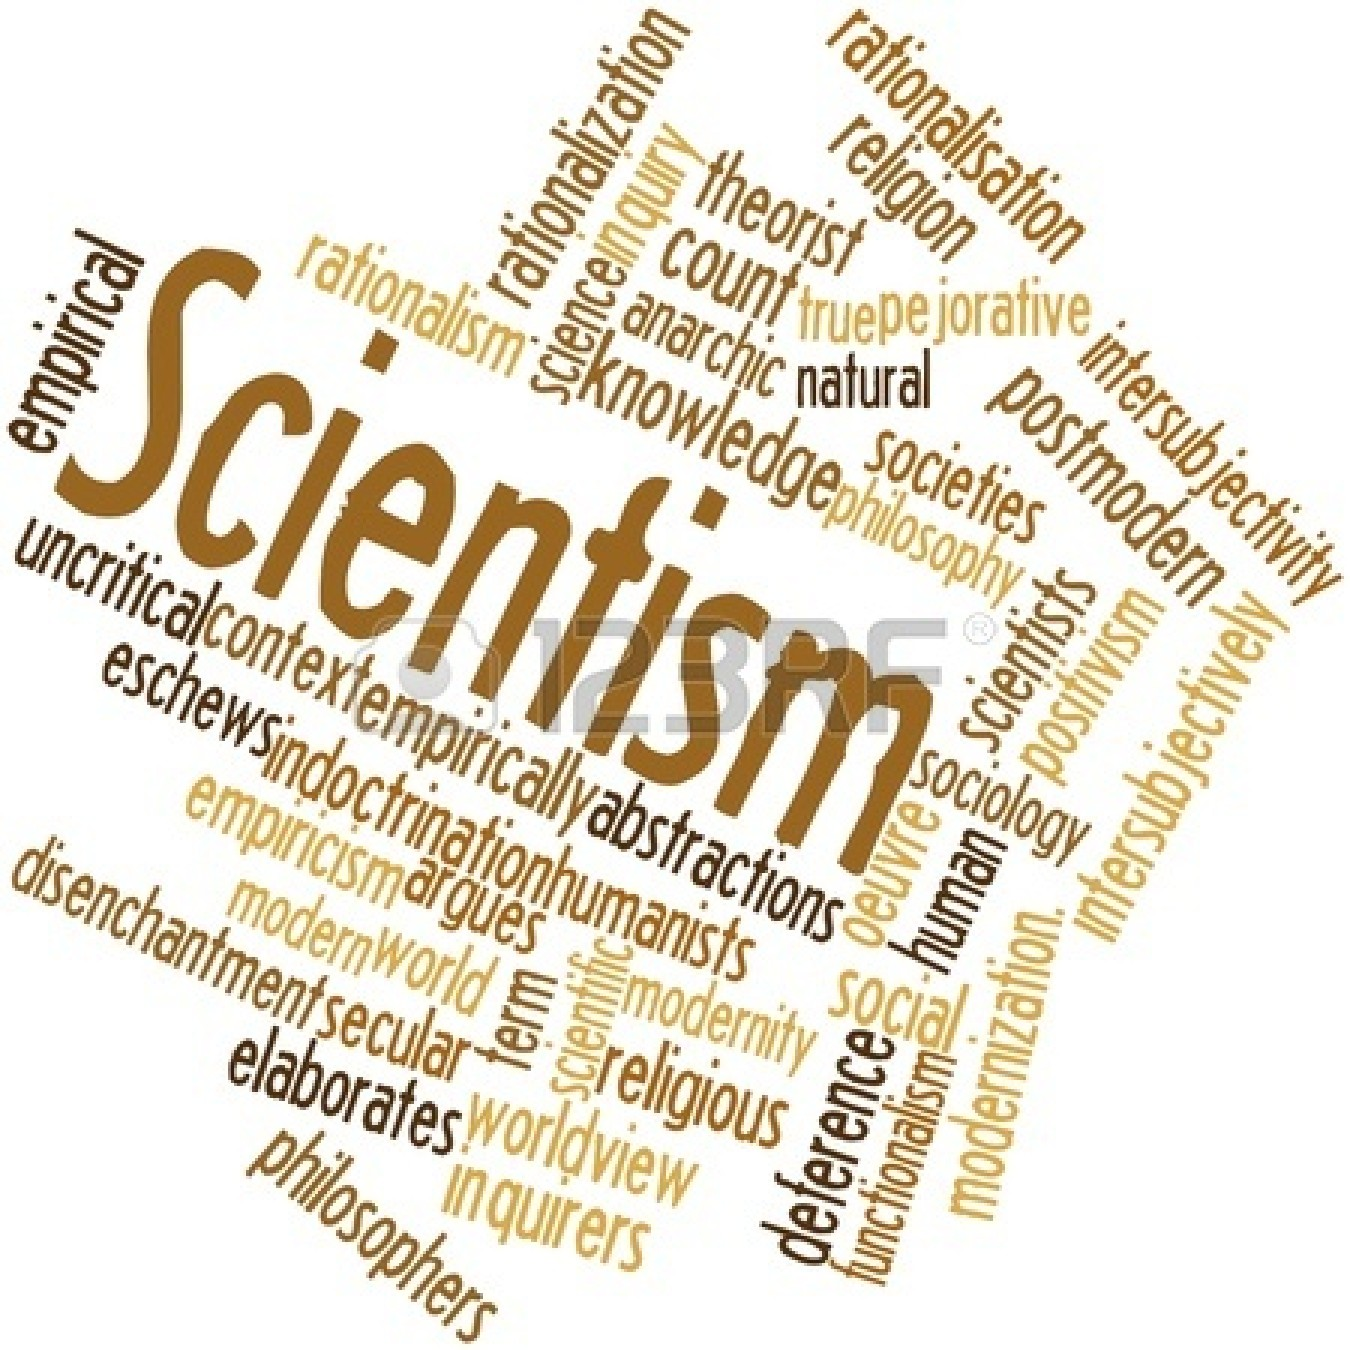 scientism word cloud.jpg